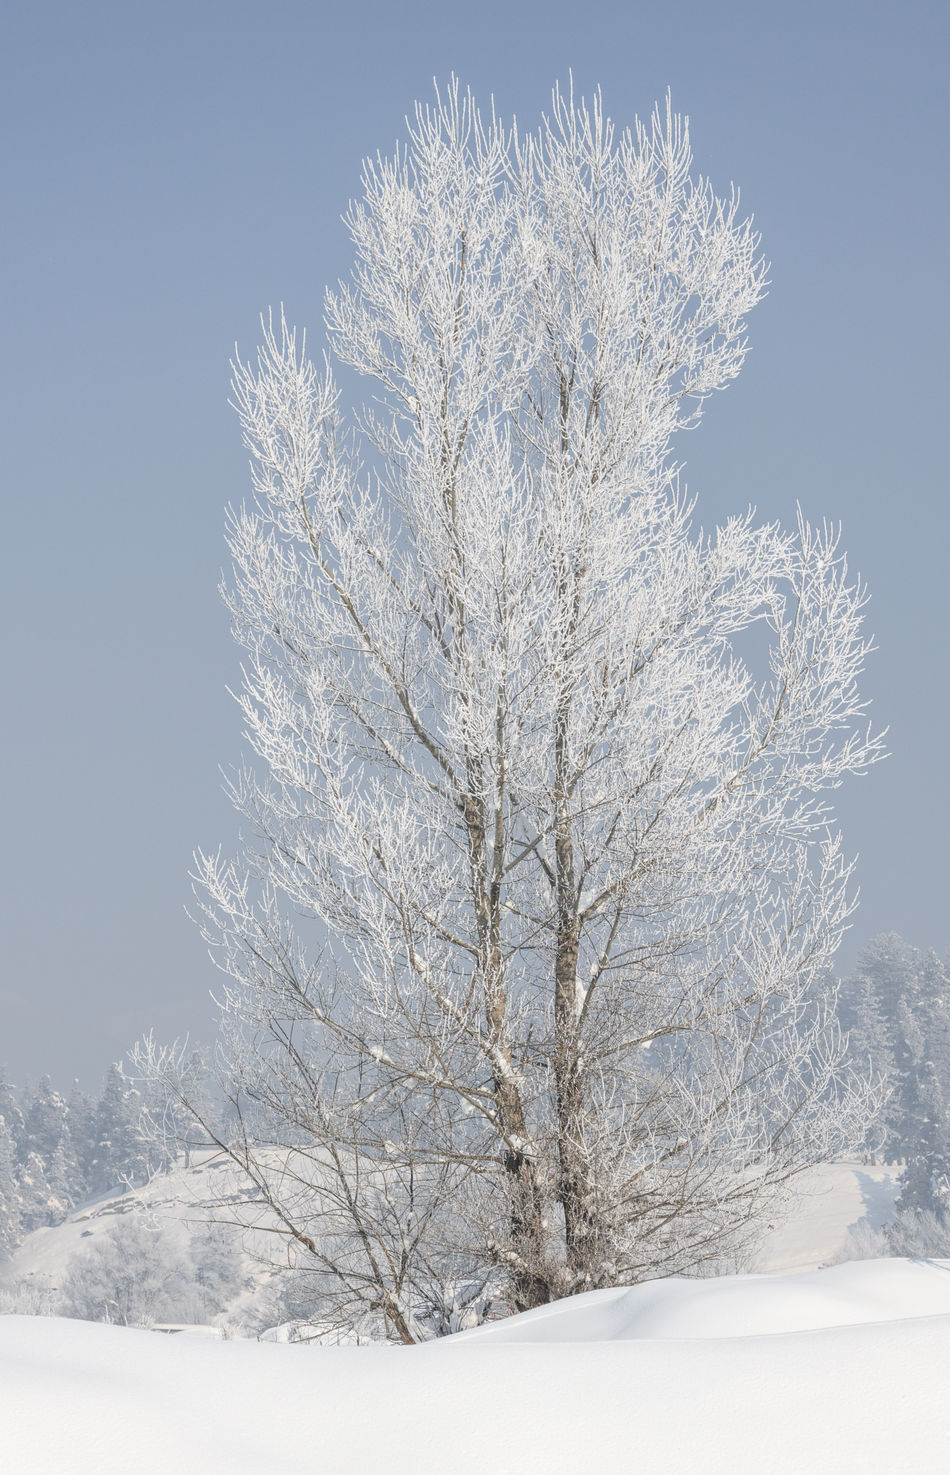 Tree covered with hoarfrost and snow in winter on forest background Branch Close-up Cold Temperature Cover Day Frost Frosty Landscape Landscape_Collection Nature No People Outdoors Panarama Scenics Seasoned Snow Snowing Tree Winter